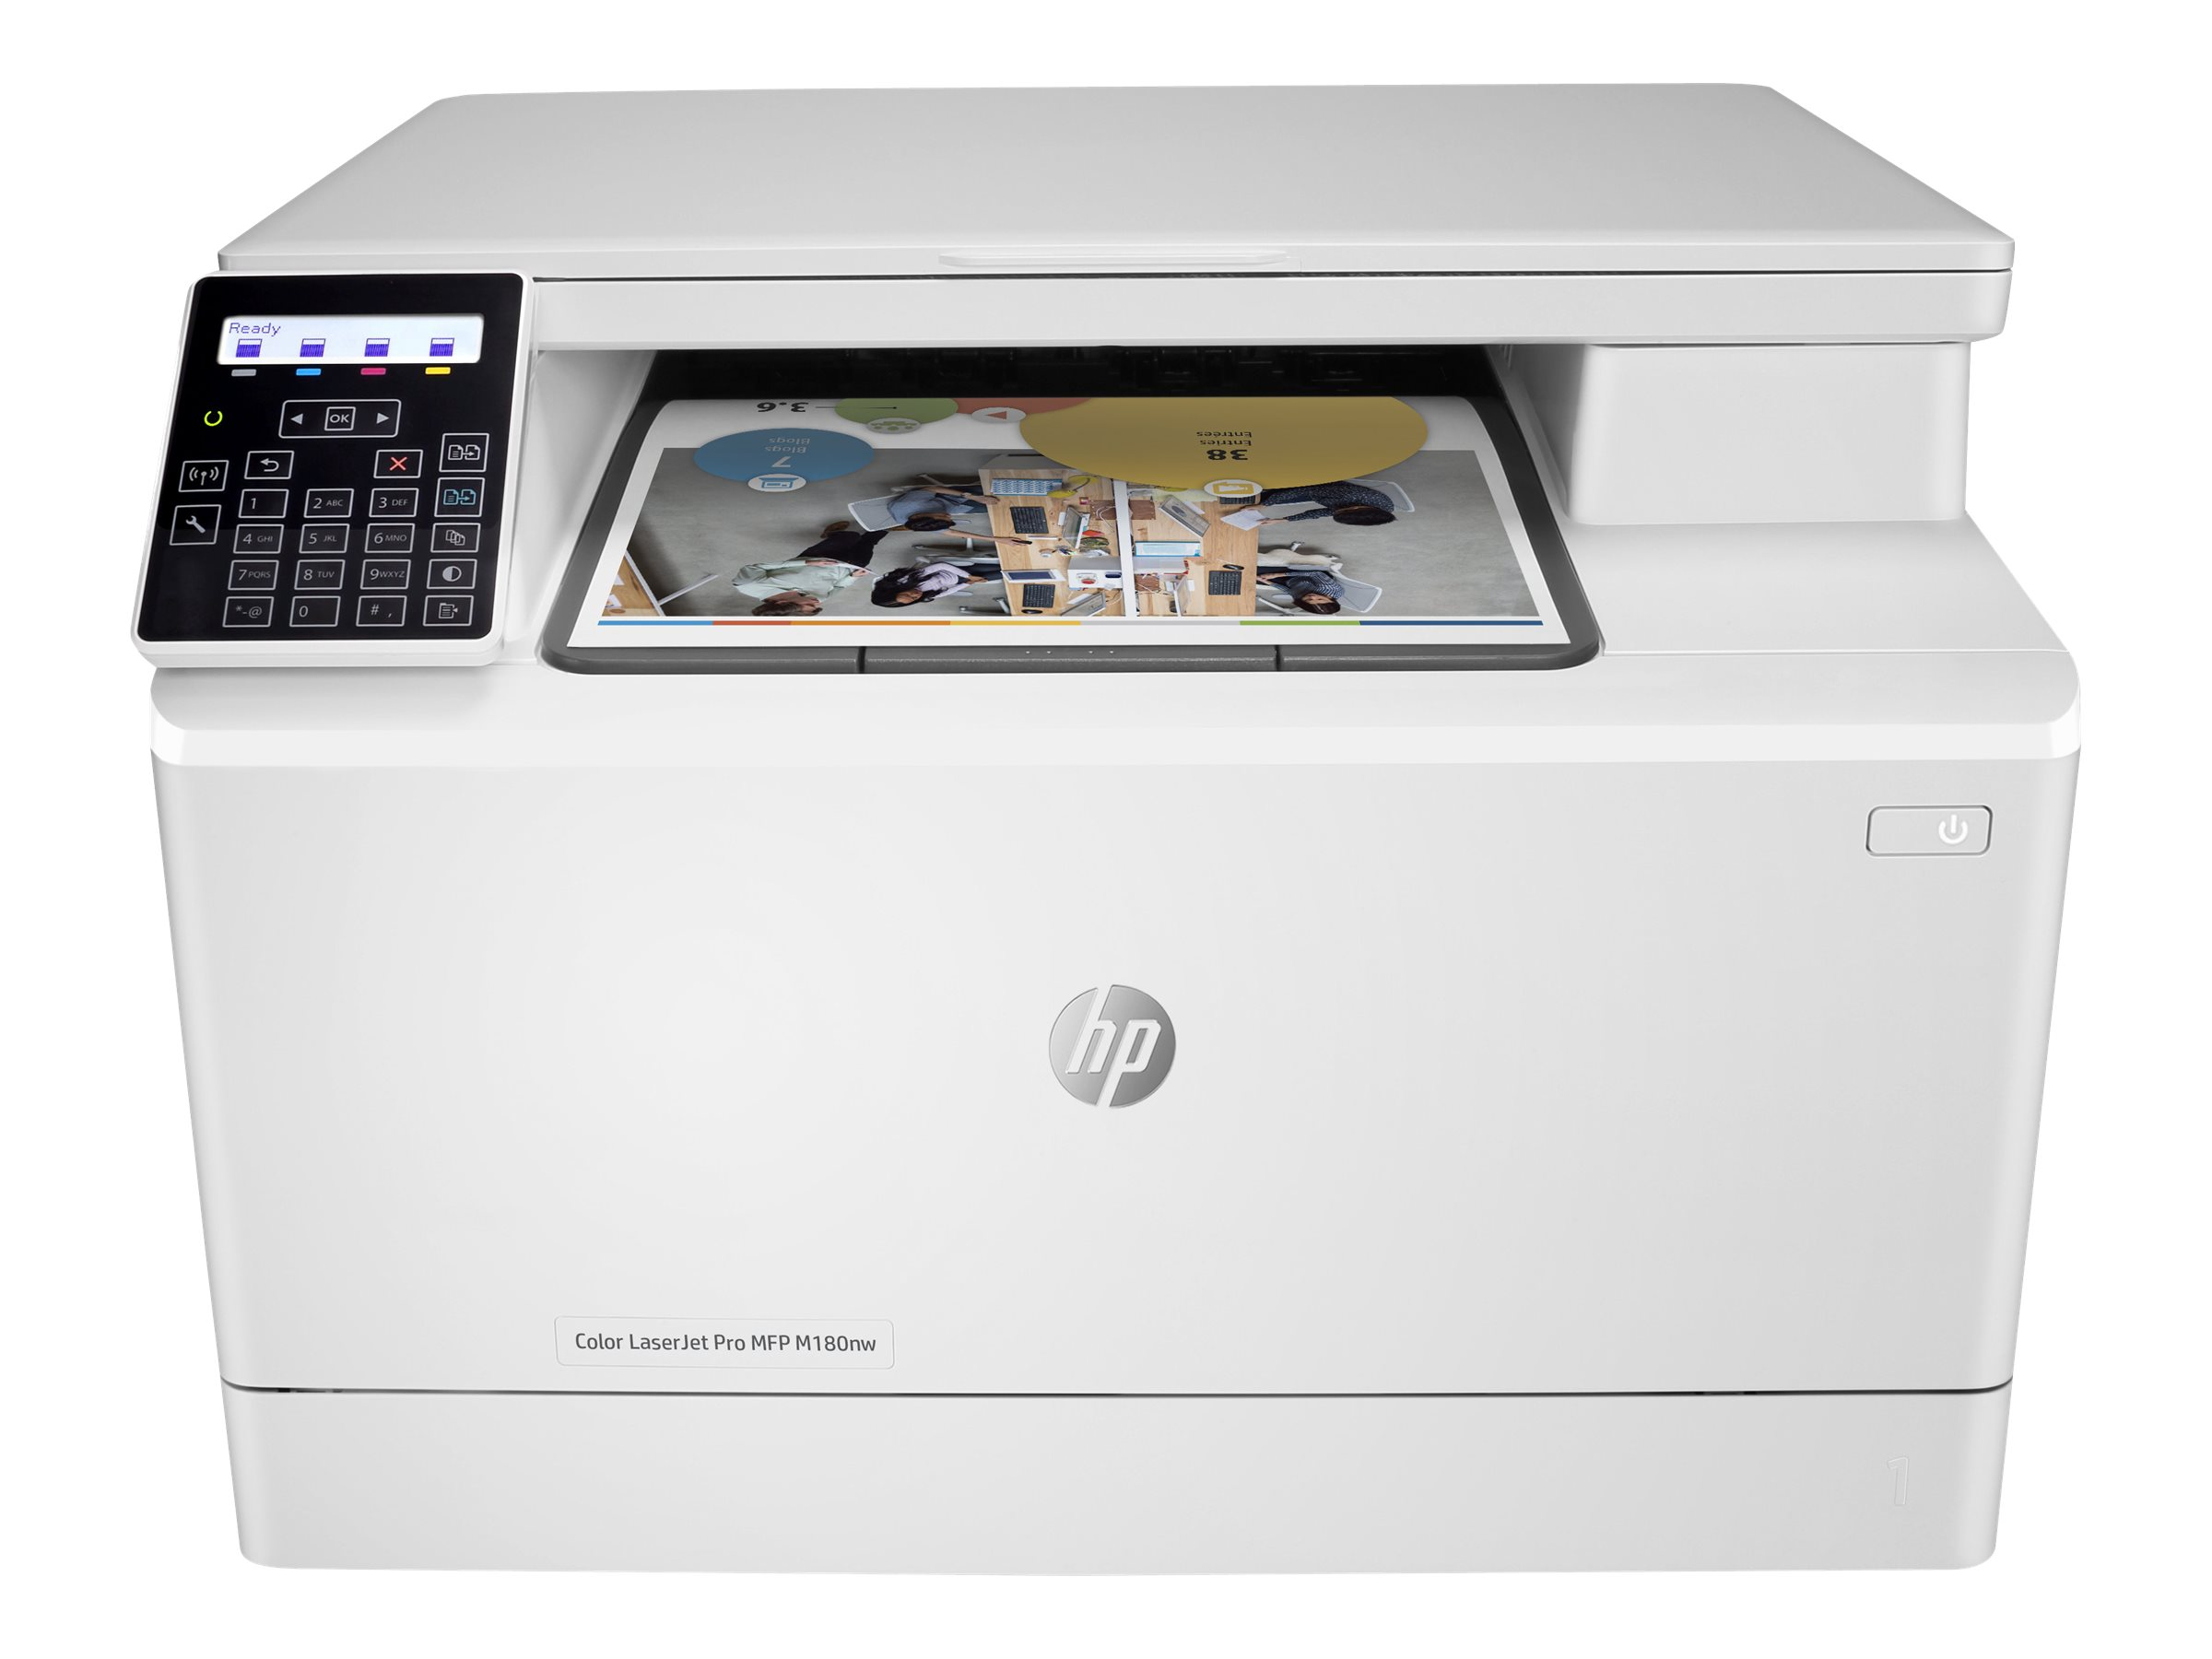 Image for Hp Color Laserjet Pro Mfp M180Nw - Multifunction Printer (Color) from Circuit City